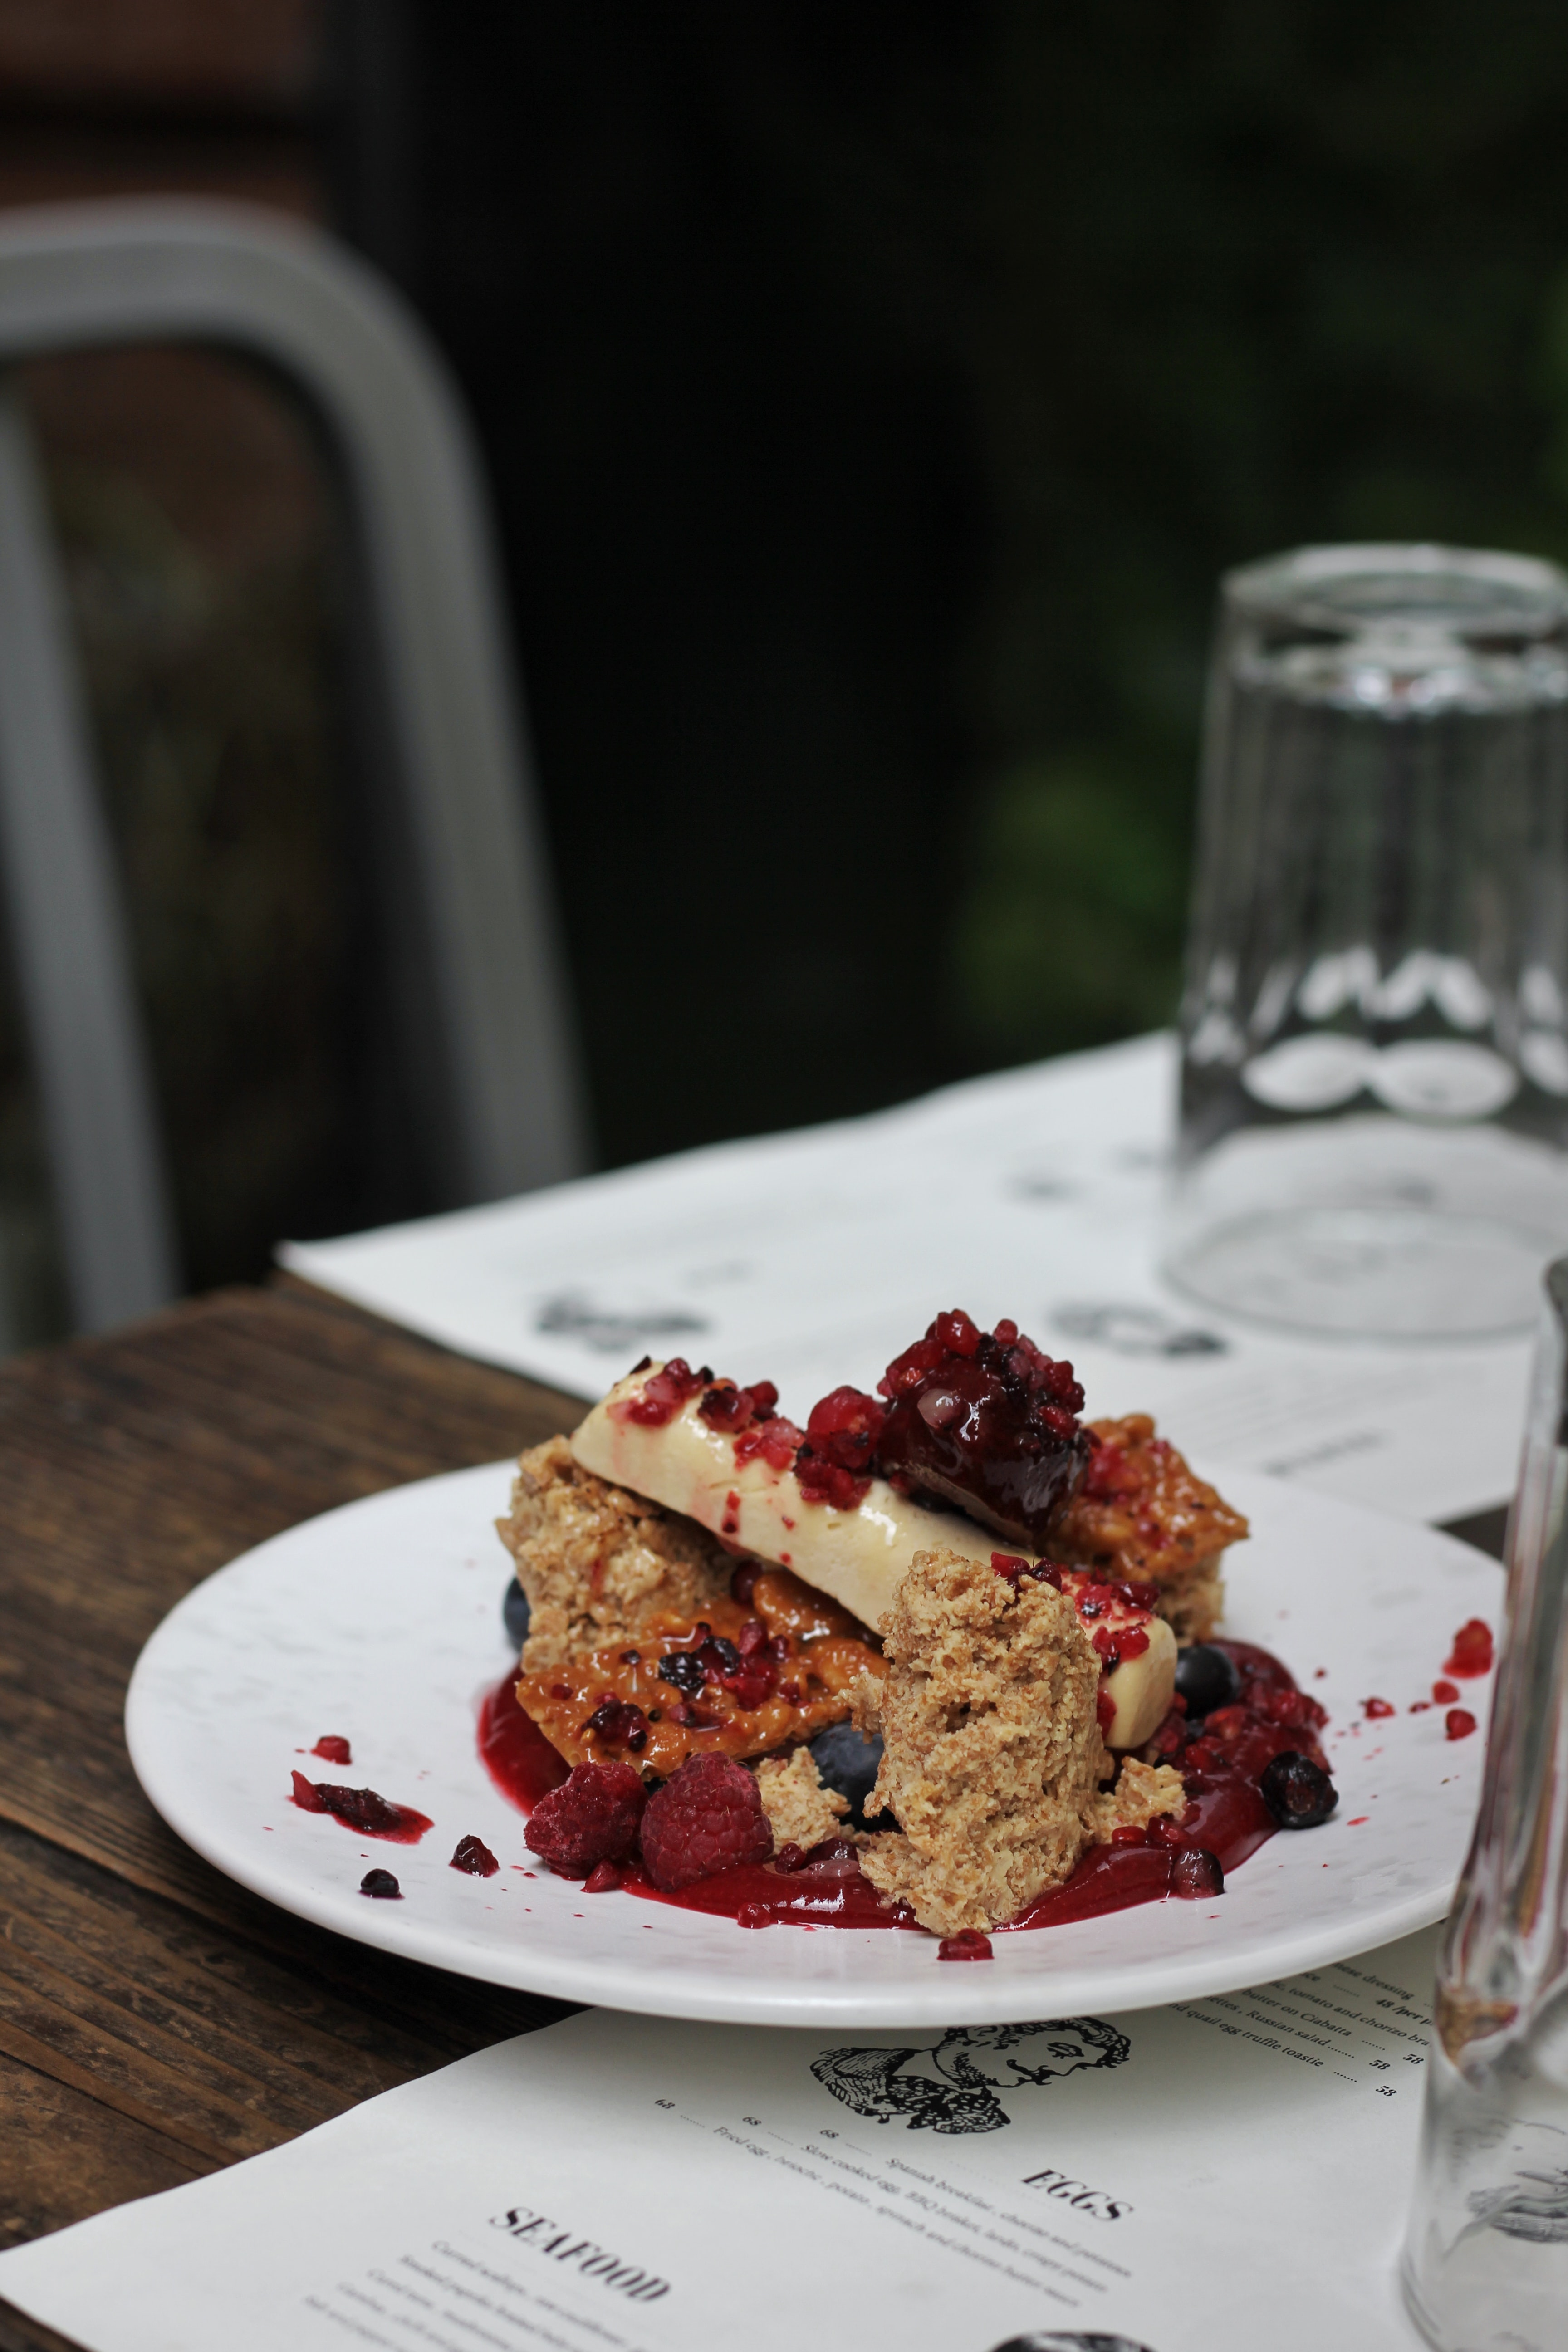 photo of plate of cake